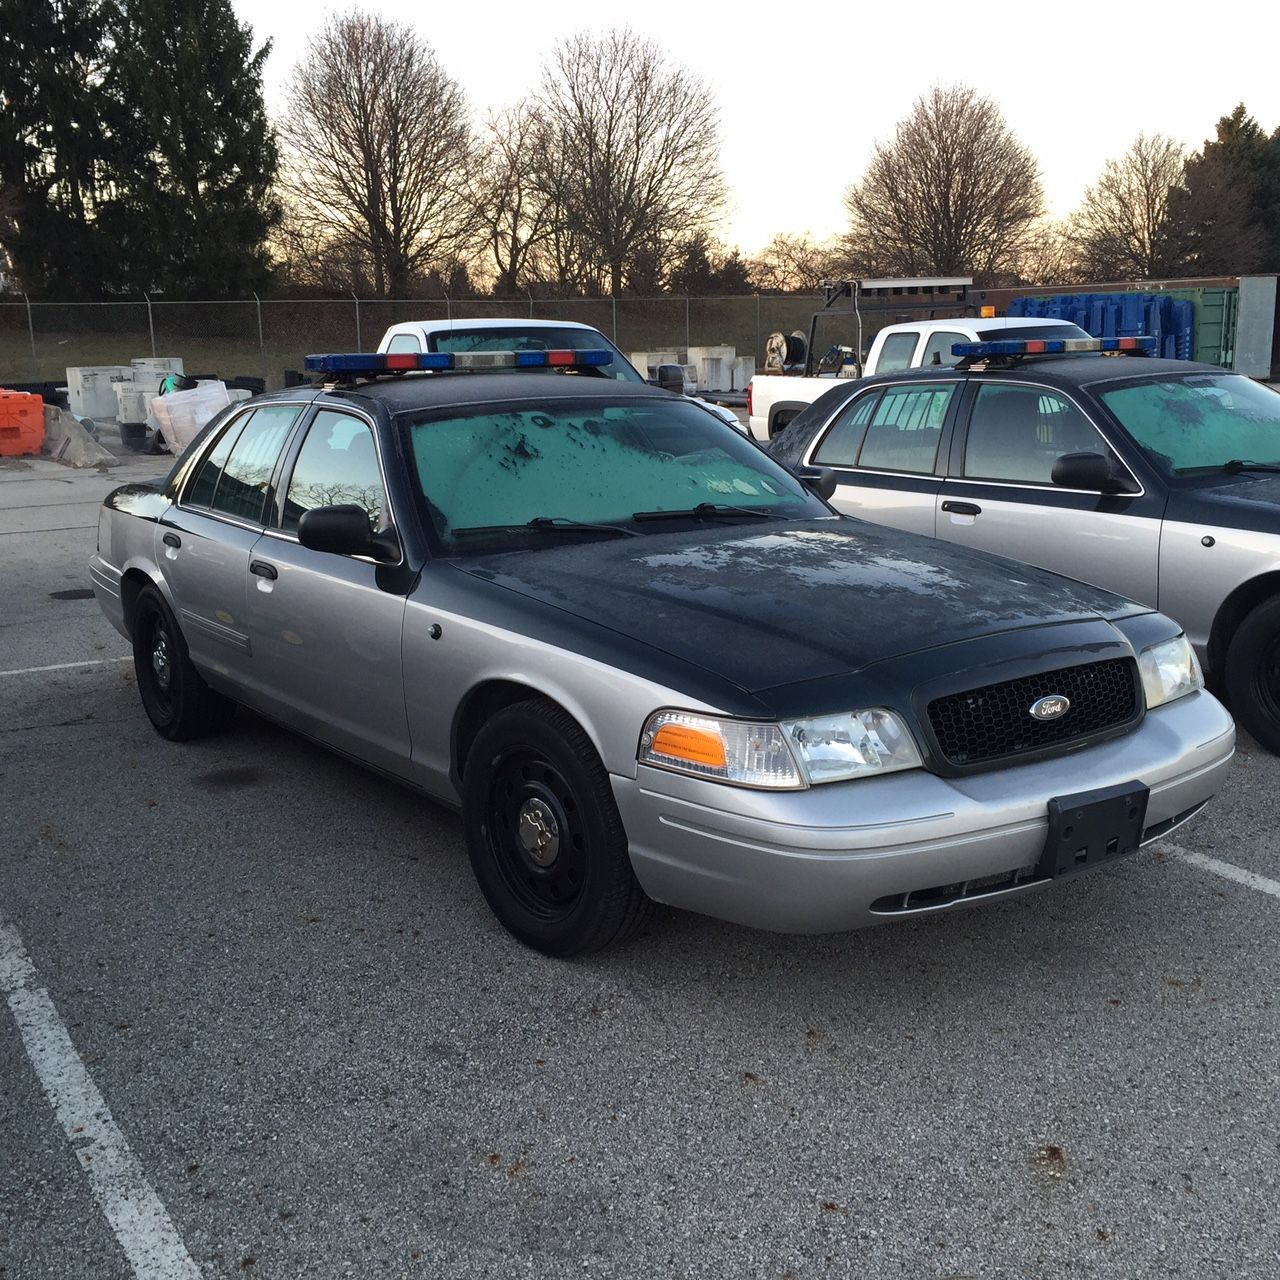 Putting Police Cars Up for Sale